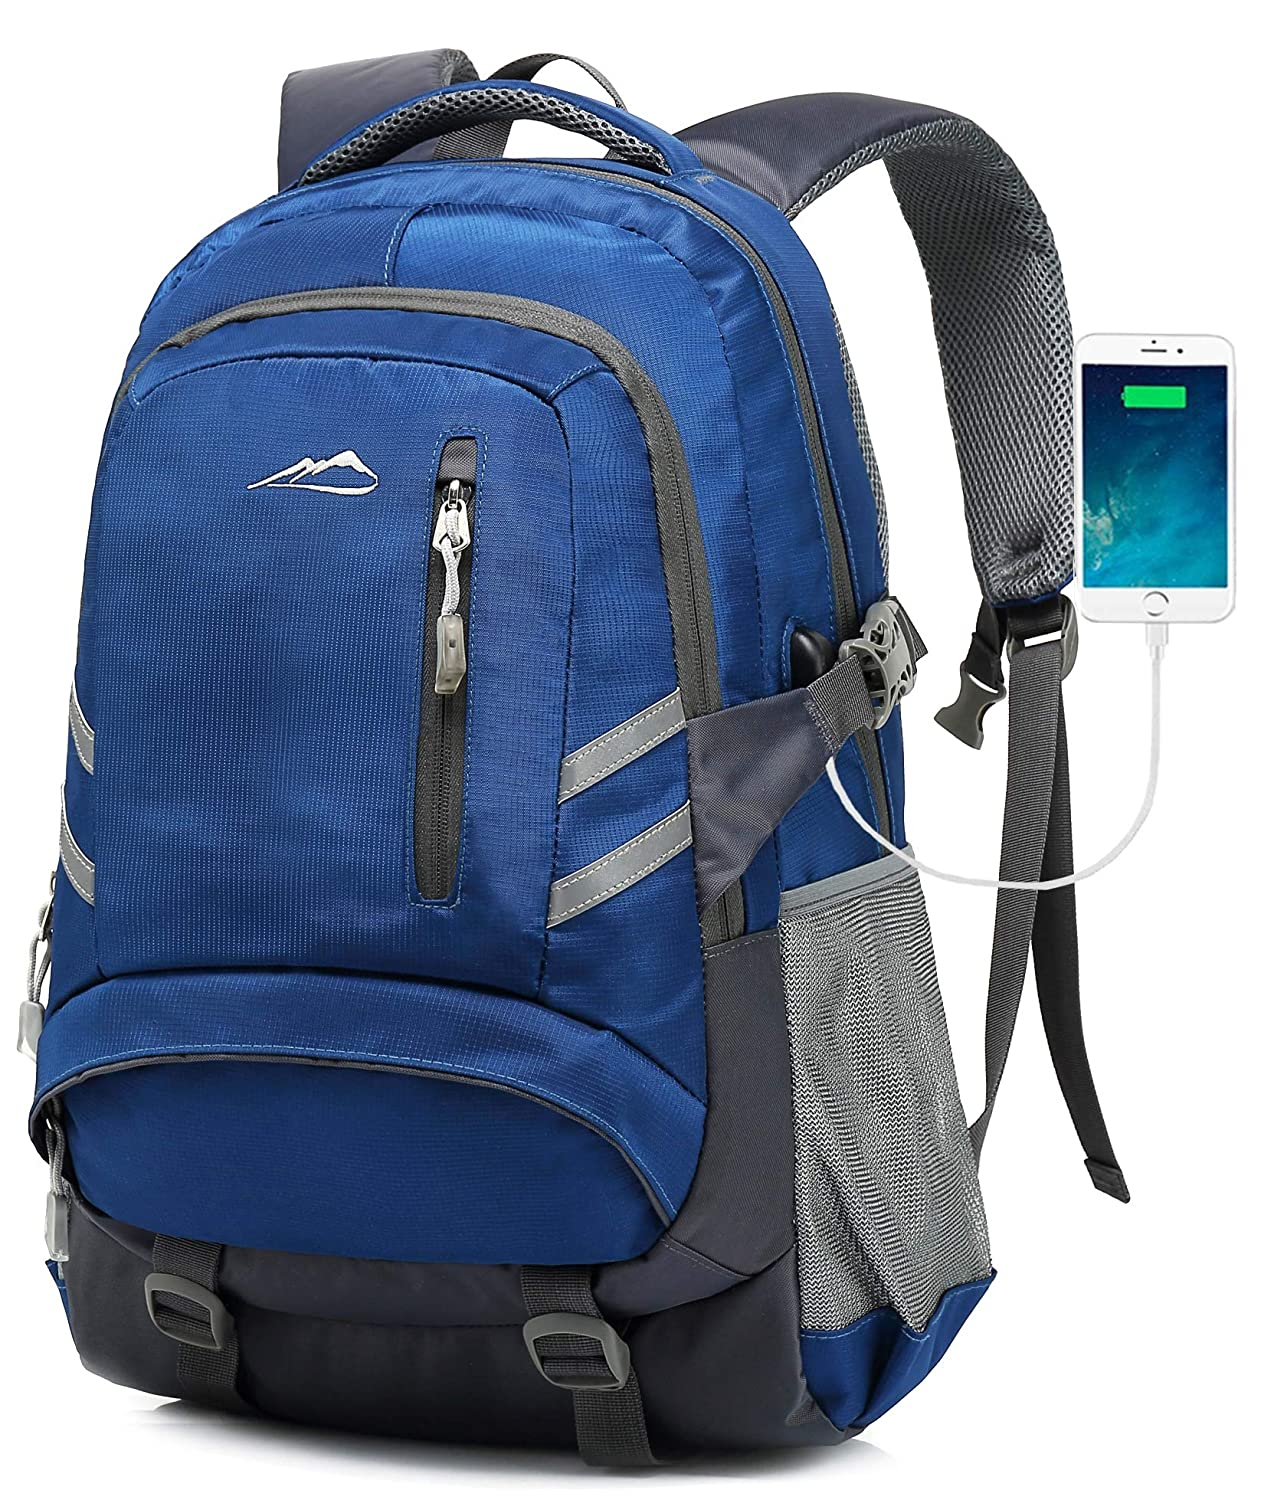 MOGGEI Backpack for School Bookbag College Student Business Travel with USB Charging Port Fit Laptop Up to 15.6 Inch Anti Theft Luggage Straps Blue